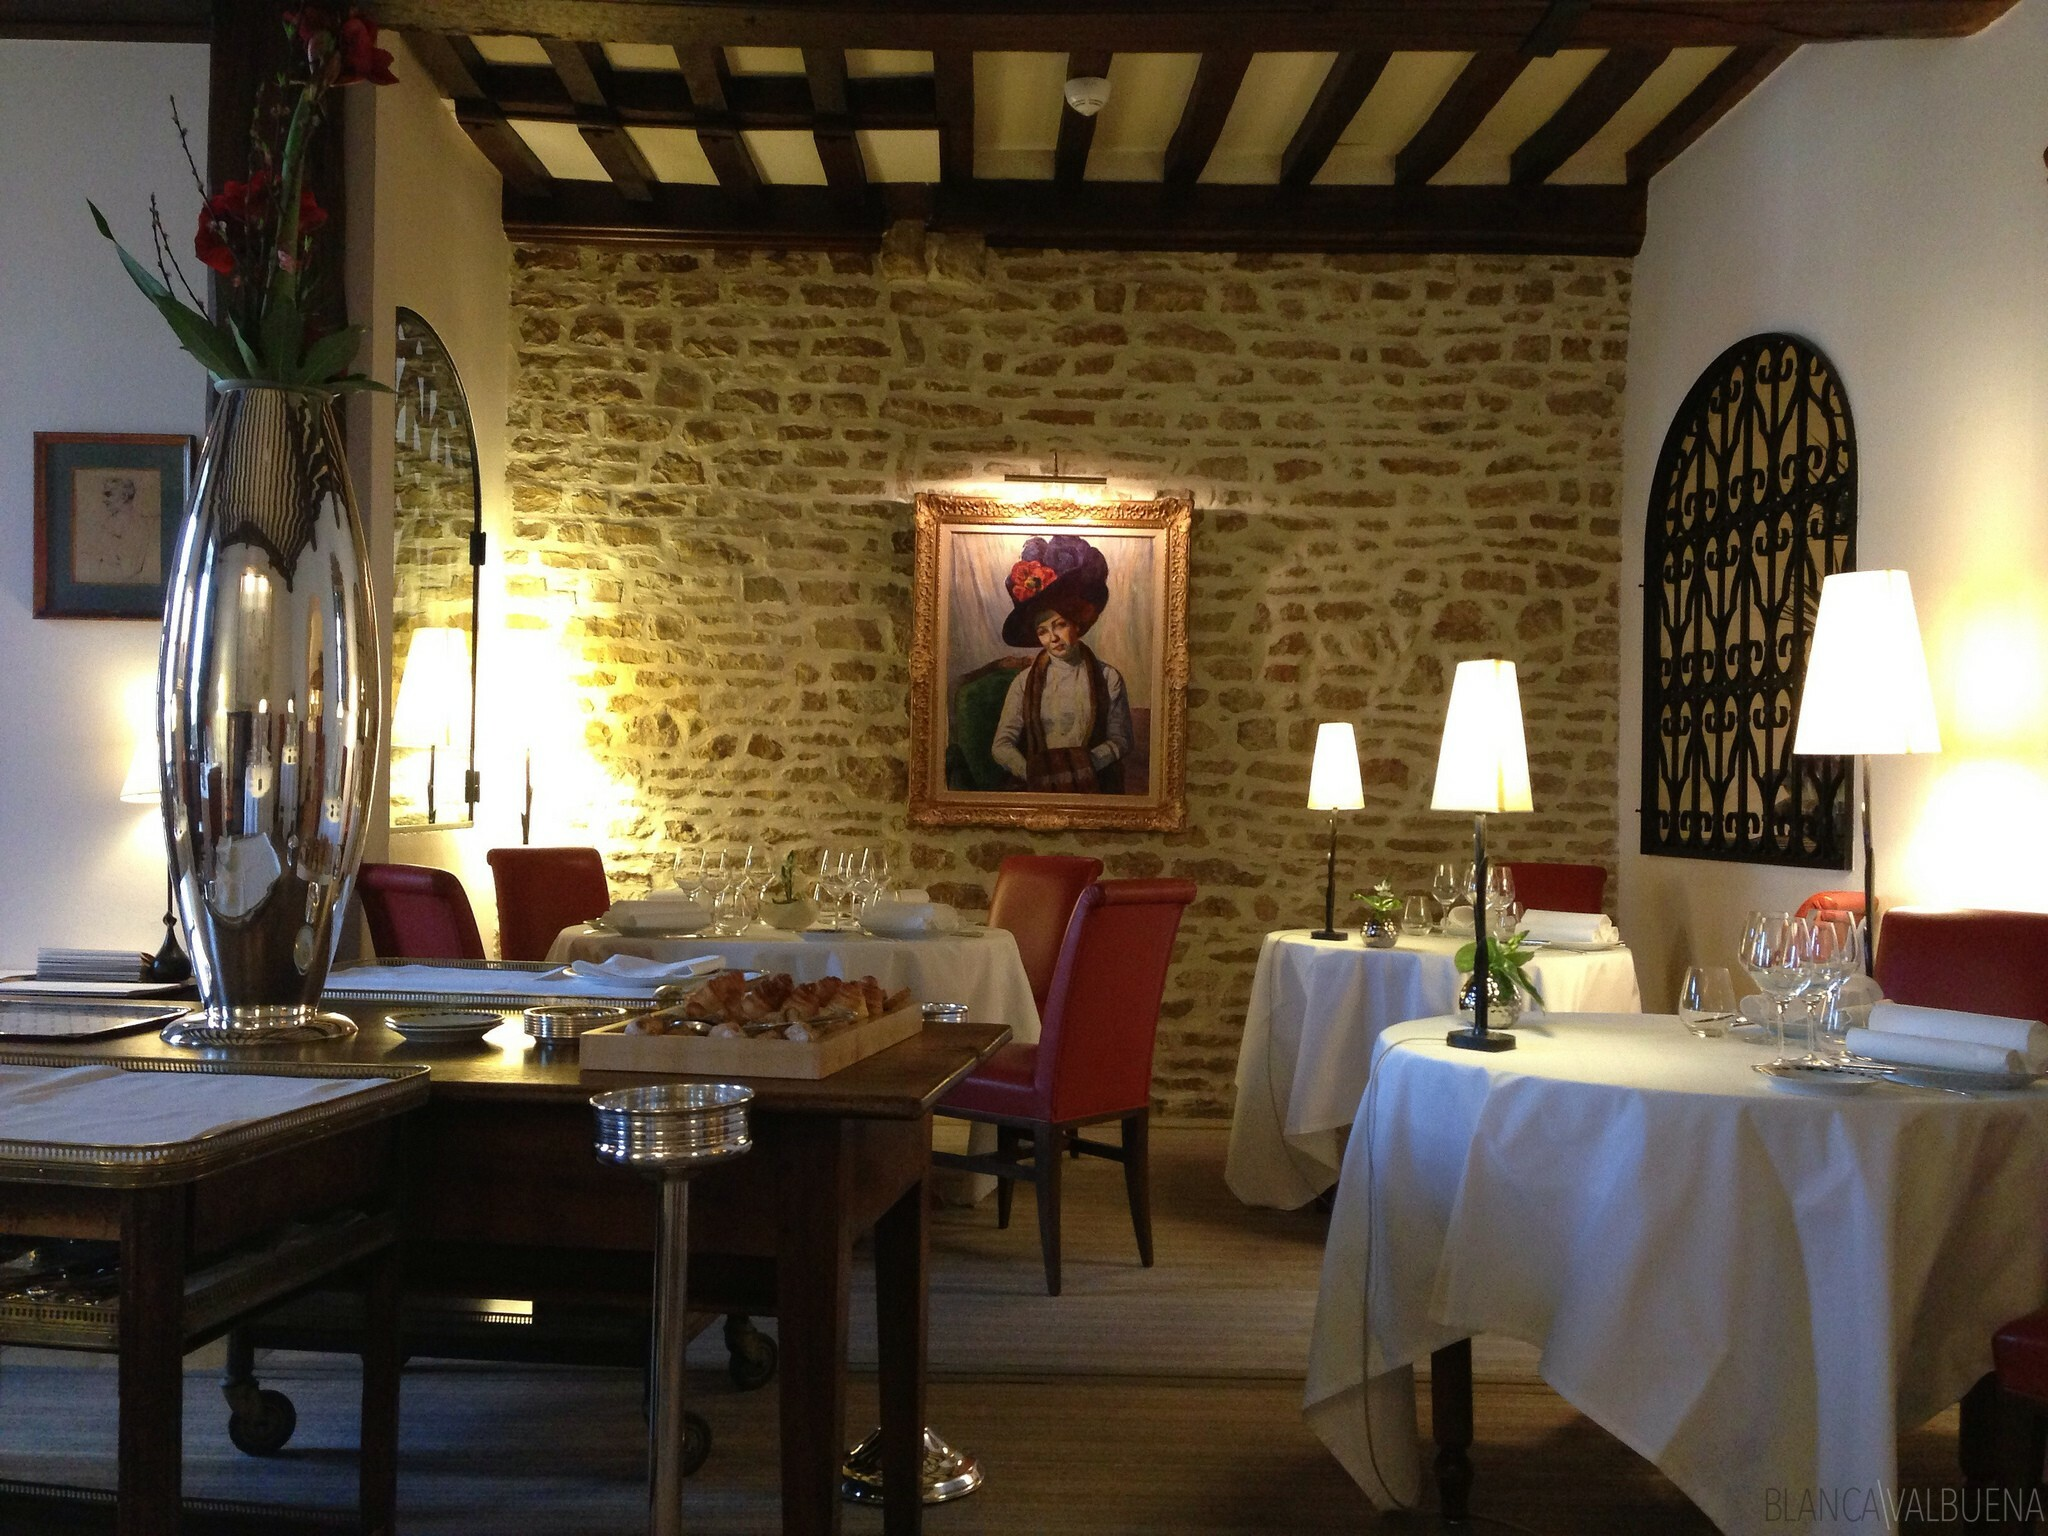 The decor at Maison Lameloise in Burgundy